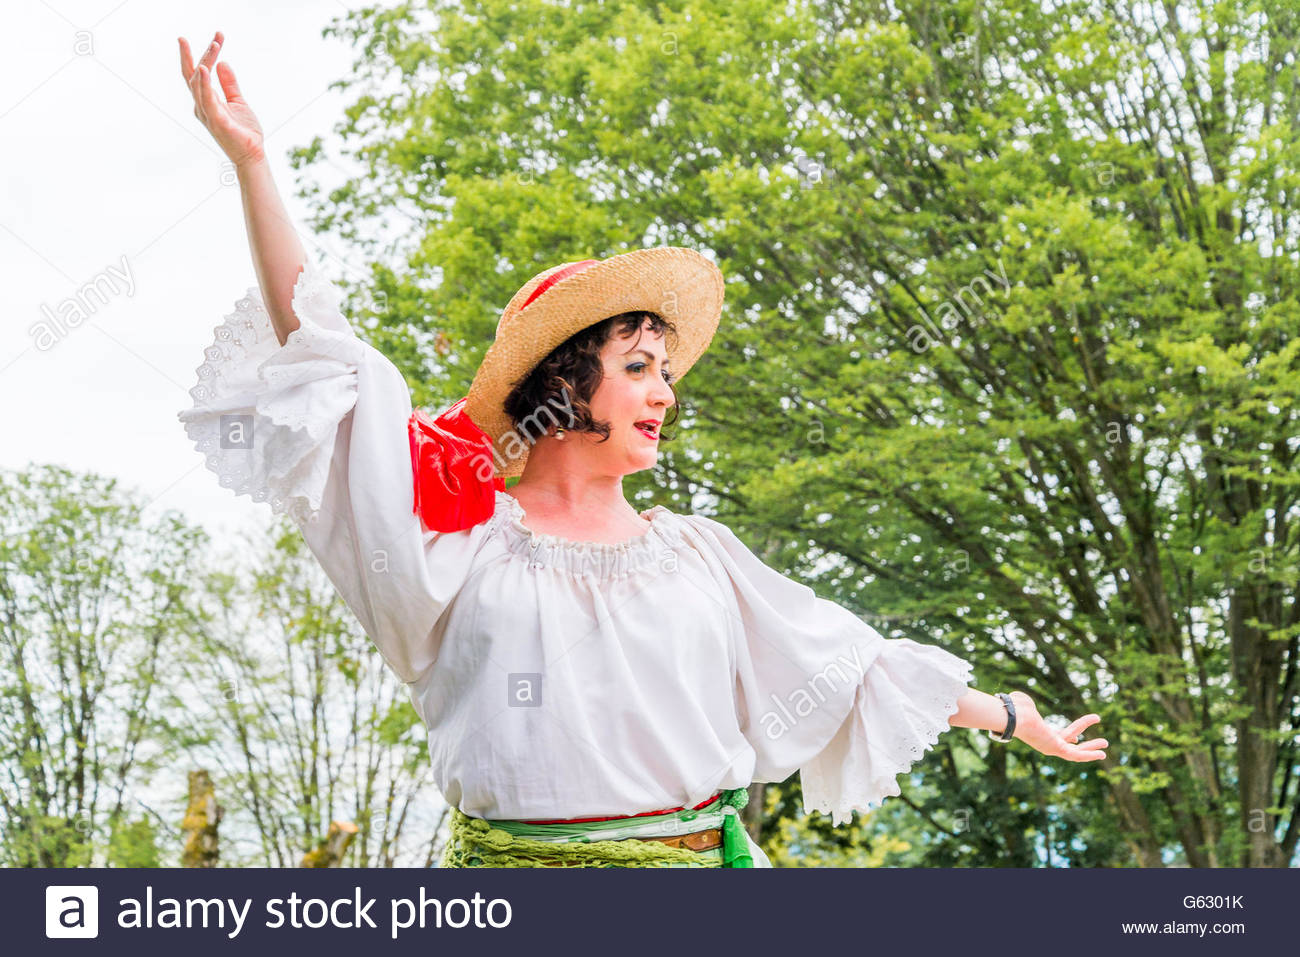 Costumed Character, Italian Day, Commercial Drive, Vancouver, British Columbia, Canada - Stock Image